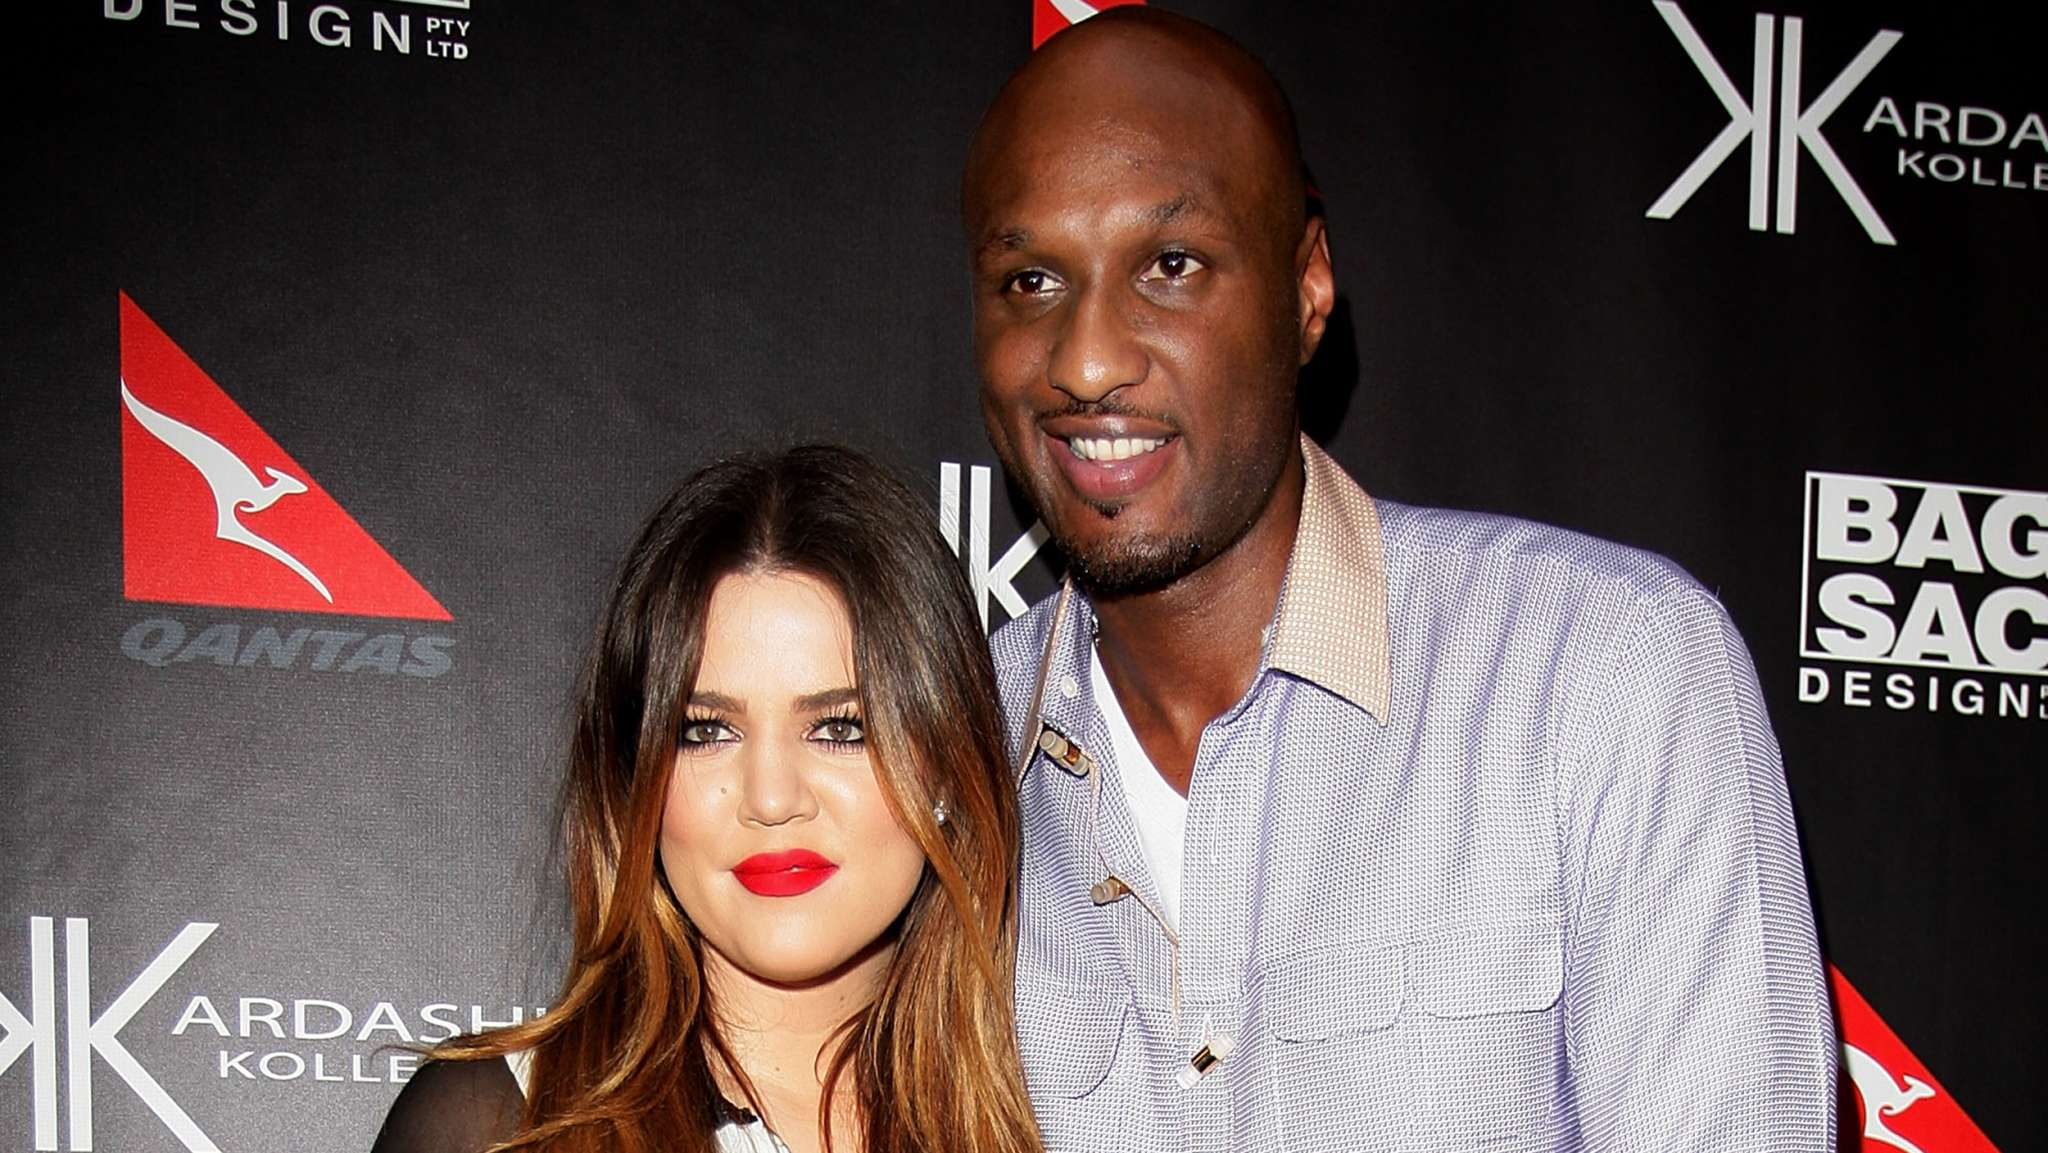 Khloe Kardashian Reacts To Lamar Odom Releasing His Memoir And Regretting His Cheating And More